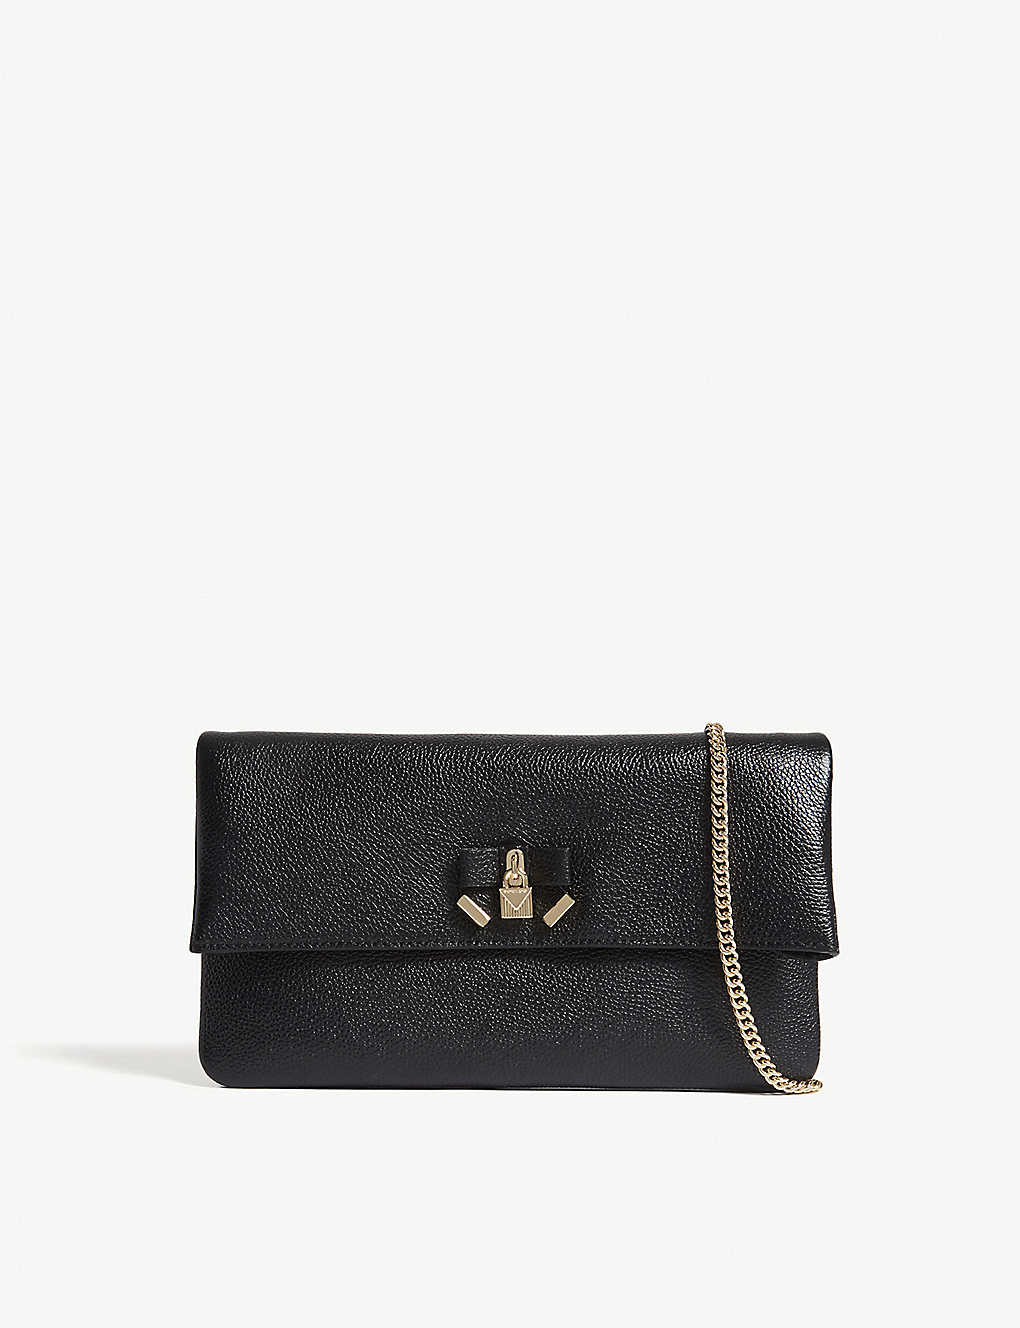 a7d10bc8da MICHAEL MICHAEL KORS - Everly leather clutch bag | Selfridges.com